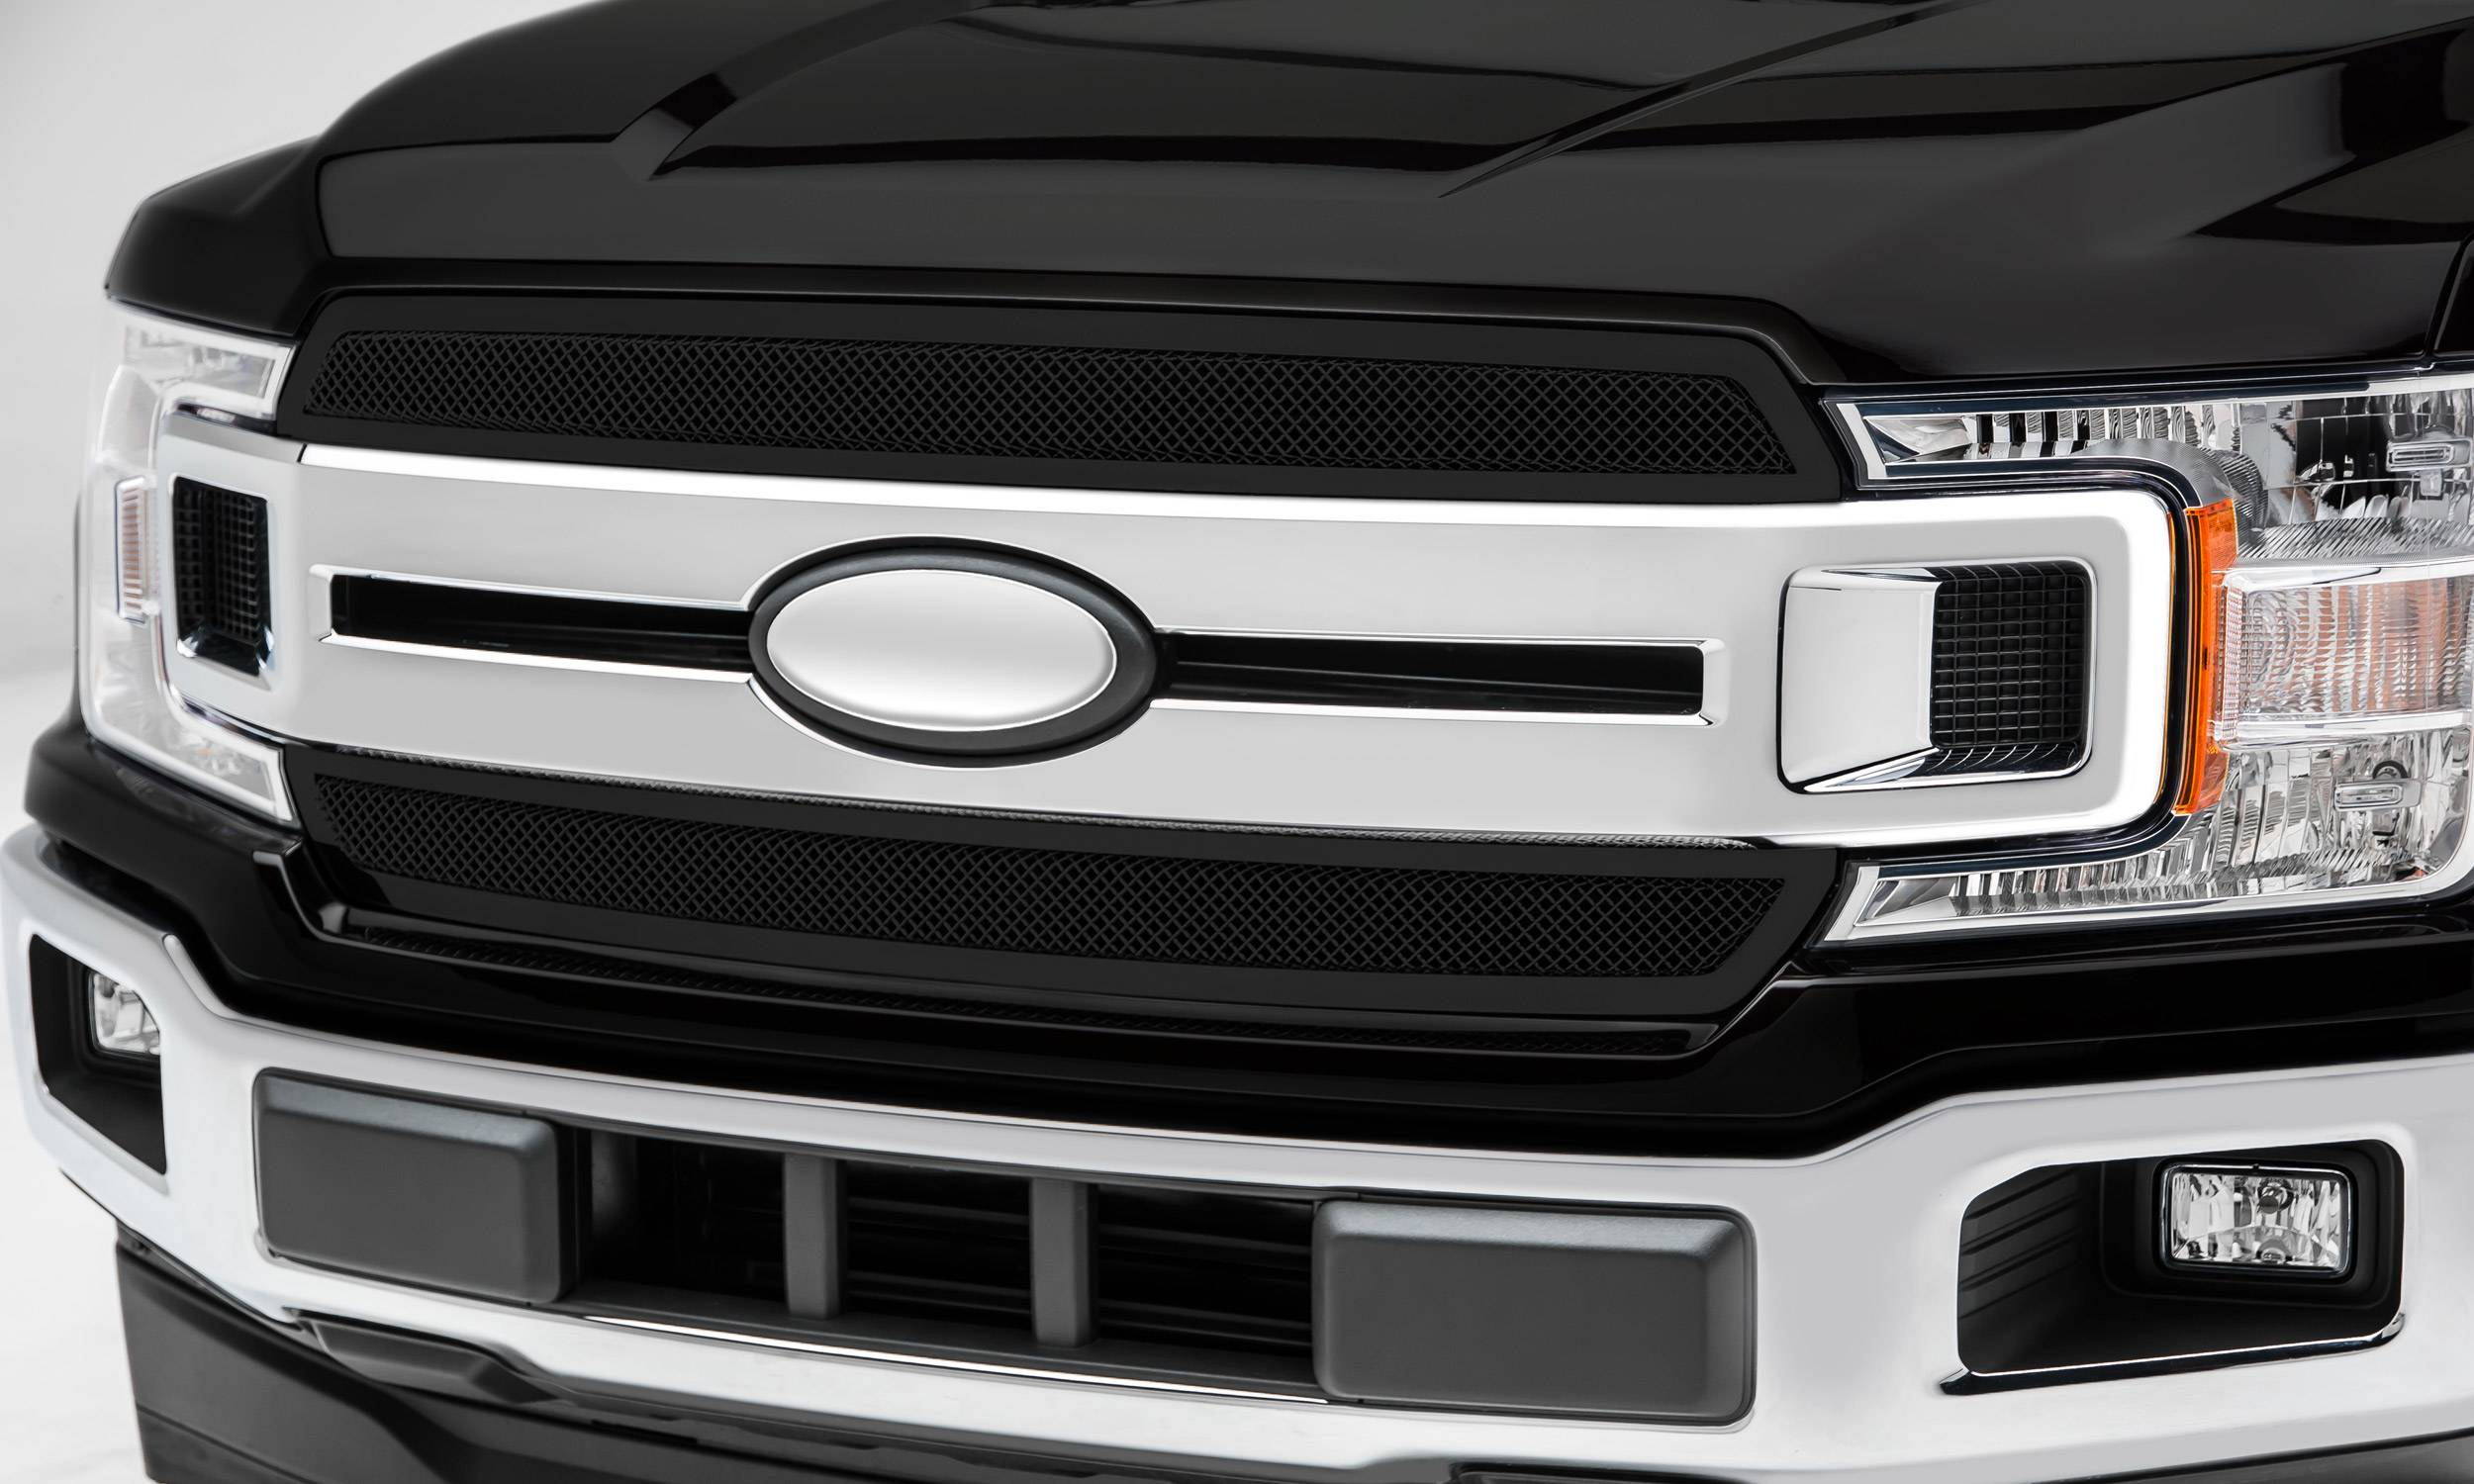 2018 2020 F 150 Xlt Lariat Upper Class Series Main Grille Black 2 Pc Overlay Insert Does Not Fit Vehicles With Camera Pn 51711